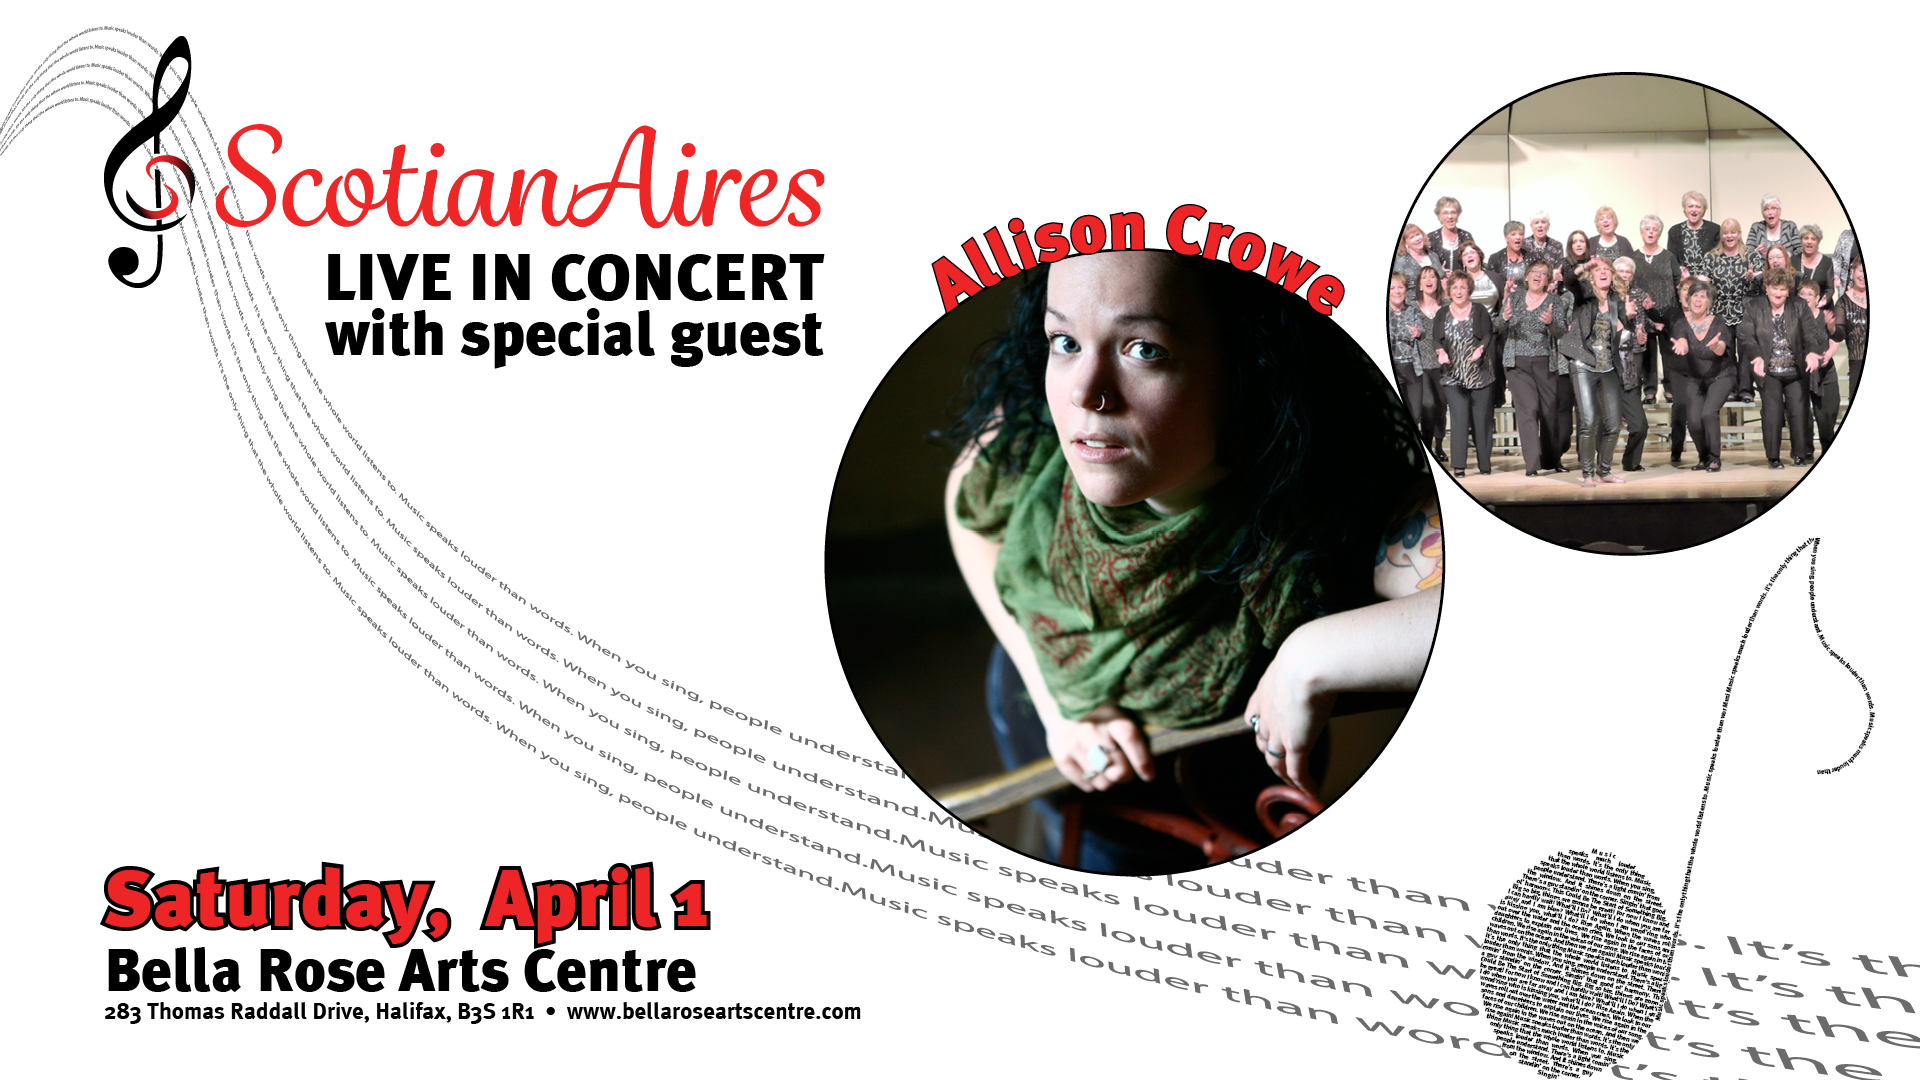 Allison Crowe, The ScotianAires, Tonic! April 1, 2017 Concert banner